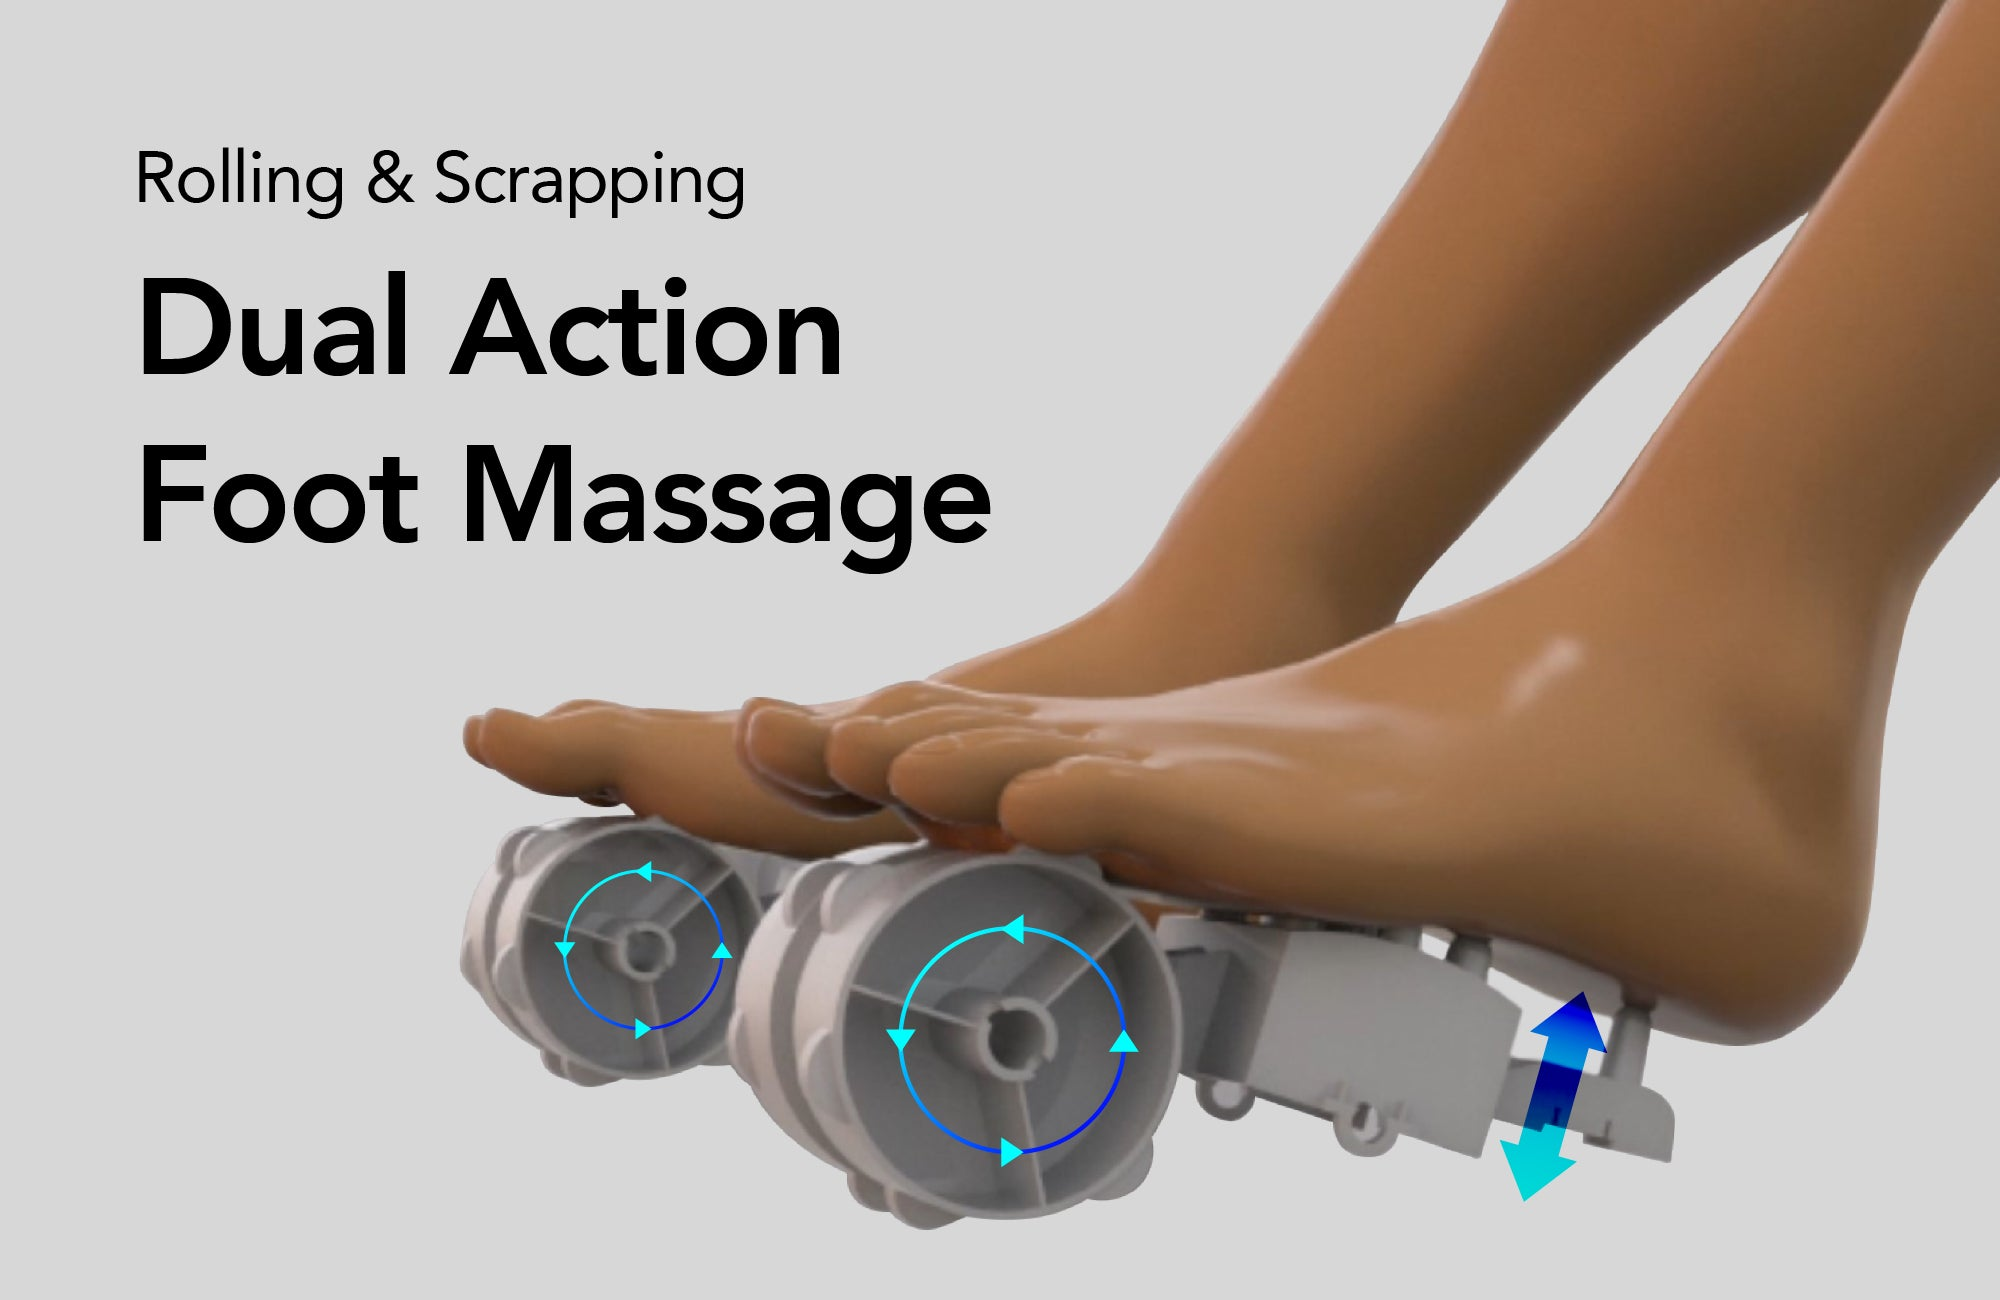 Dual Action Foot Massage